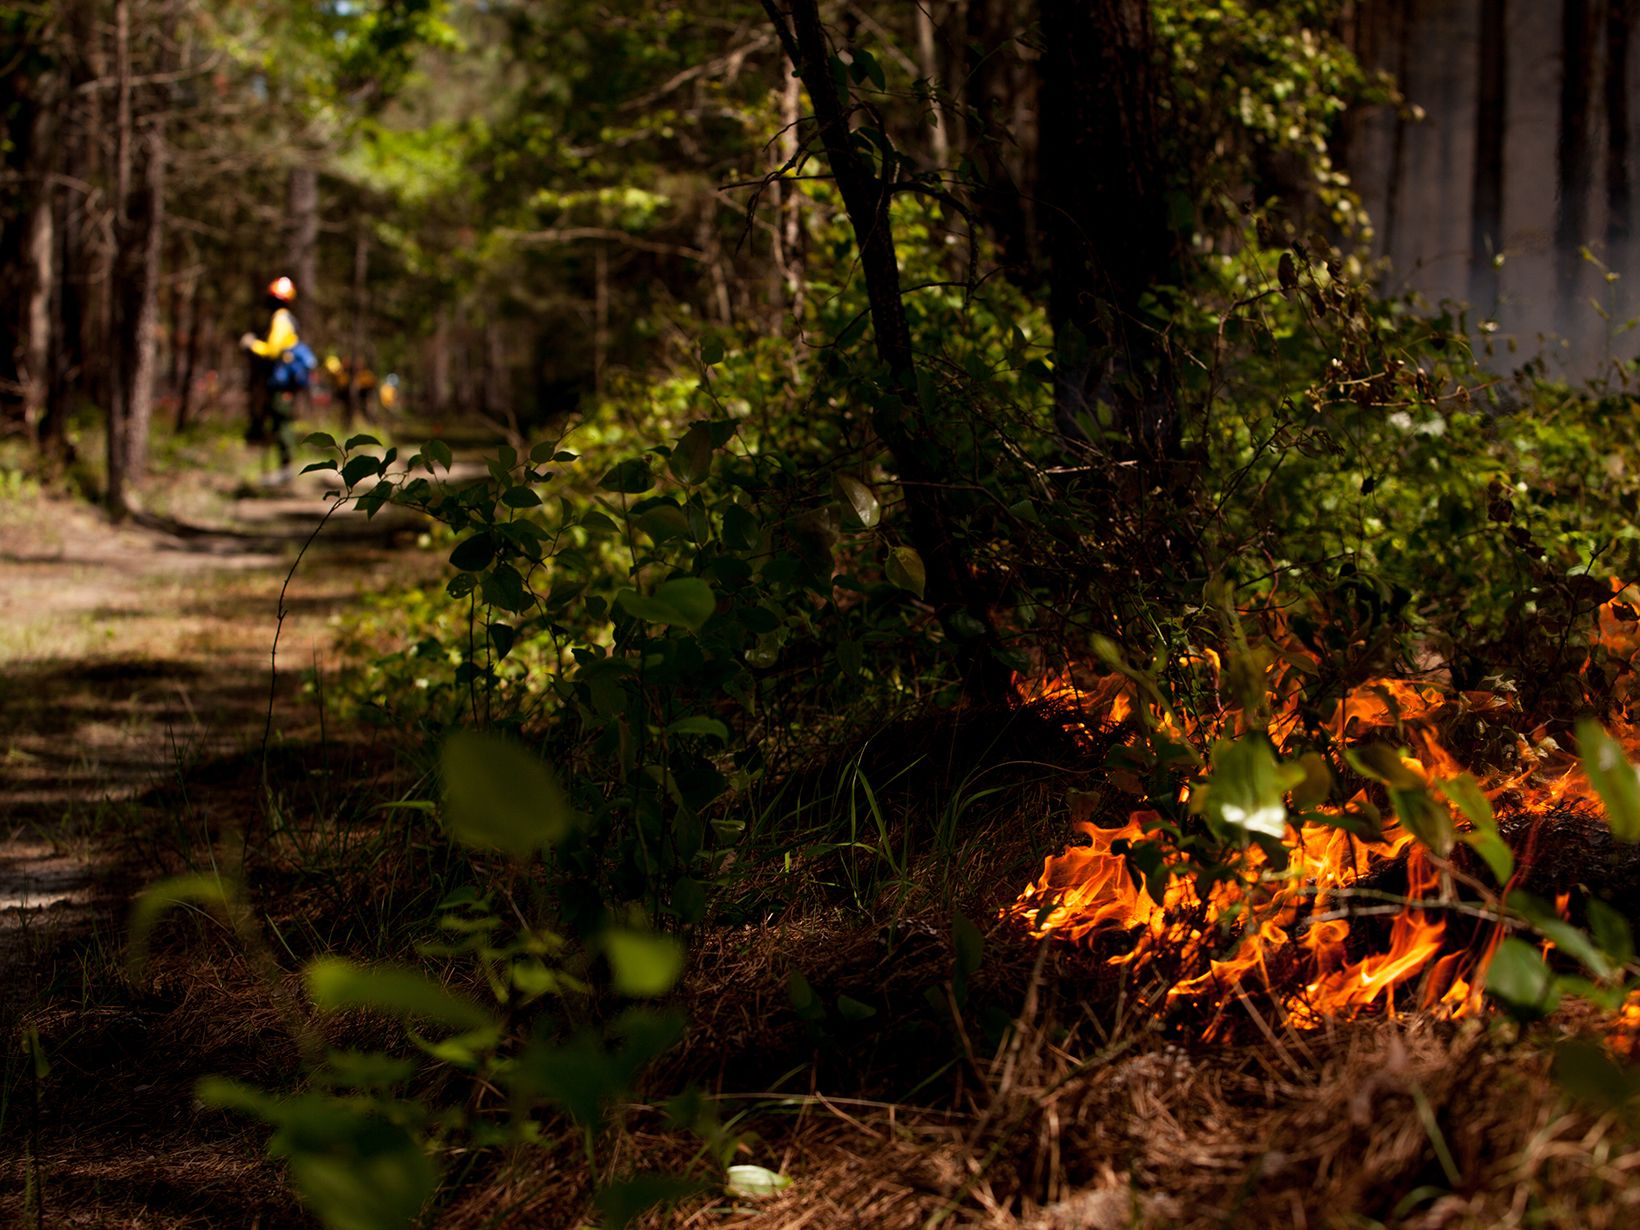 In the foreground a low fire burns in green vegetation at the edge of a wide, sandy path. A man walks along the path in the background.